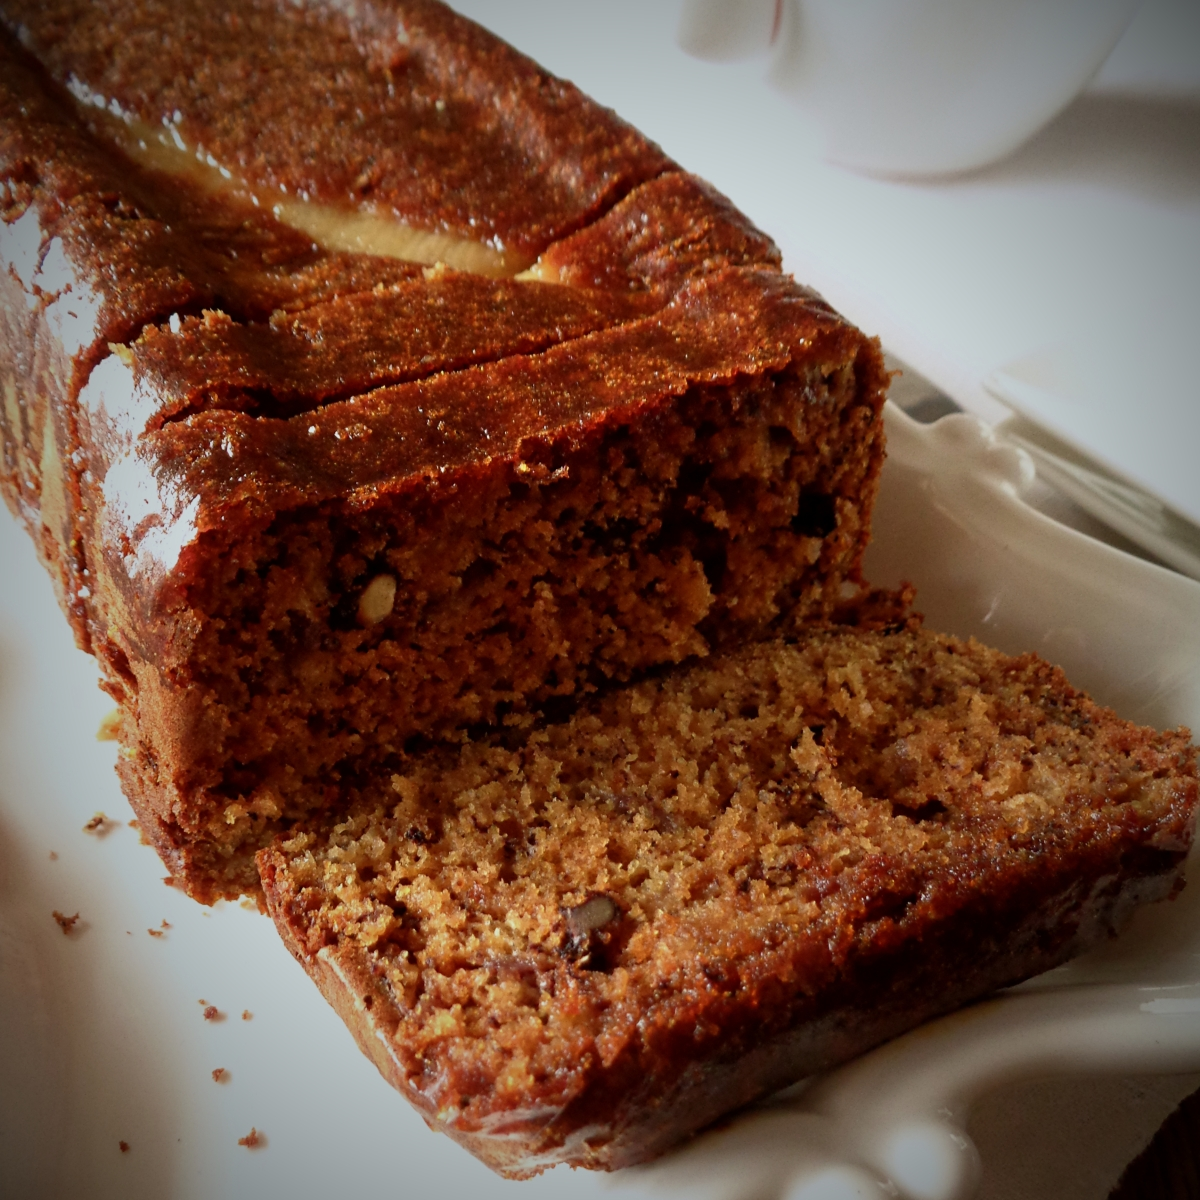 Pão de banana com nozes e mel / Banana bread with walnuts and honey